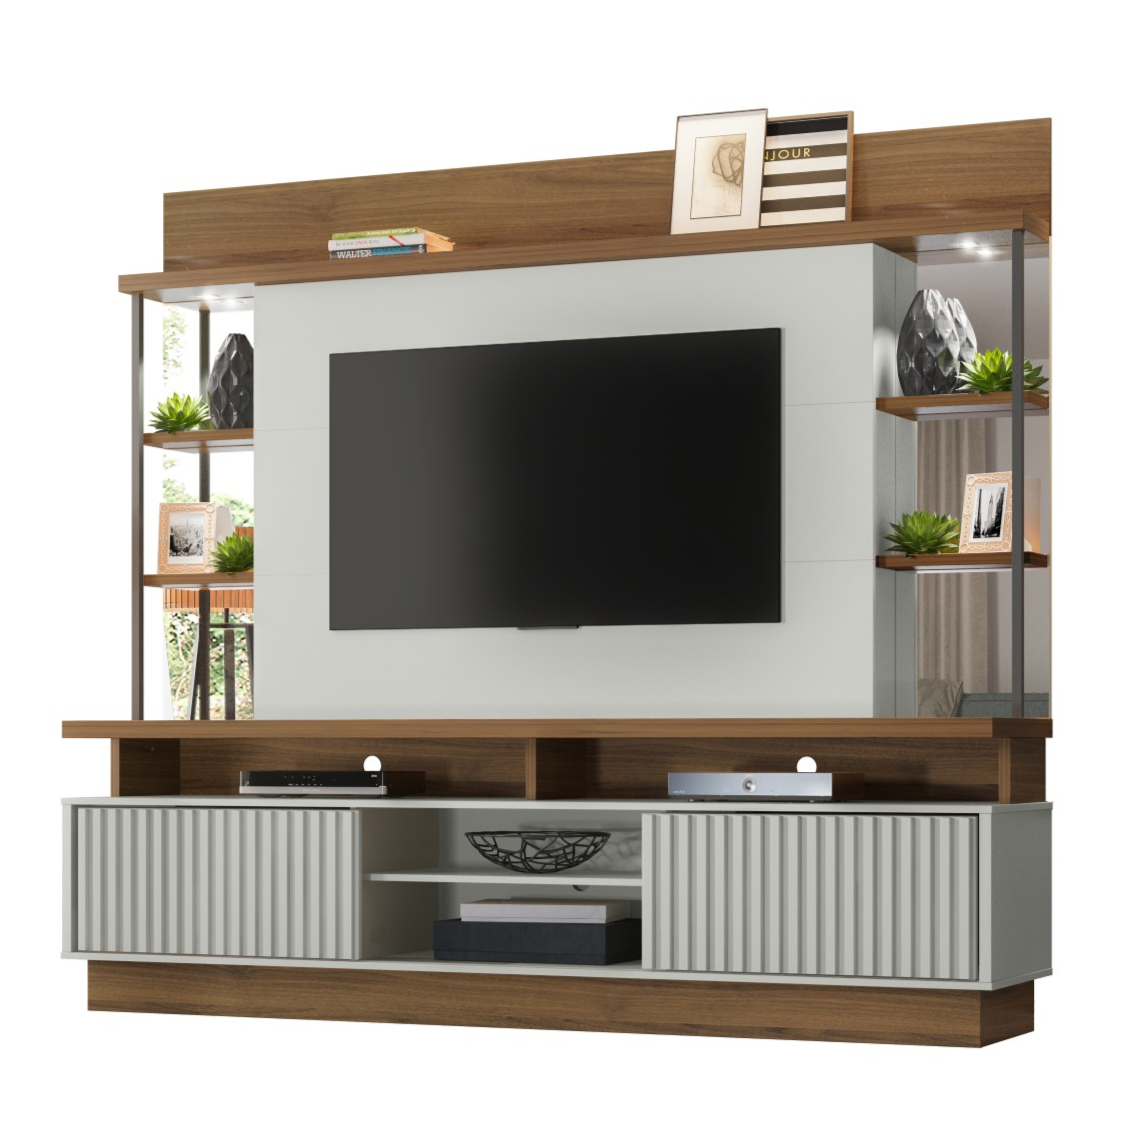 Estante Home Tv e Painel MDF e MDP 218cm Salvador Off White e Nogueira - Linea